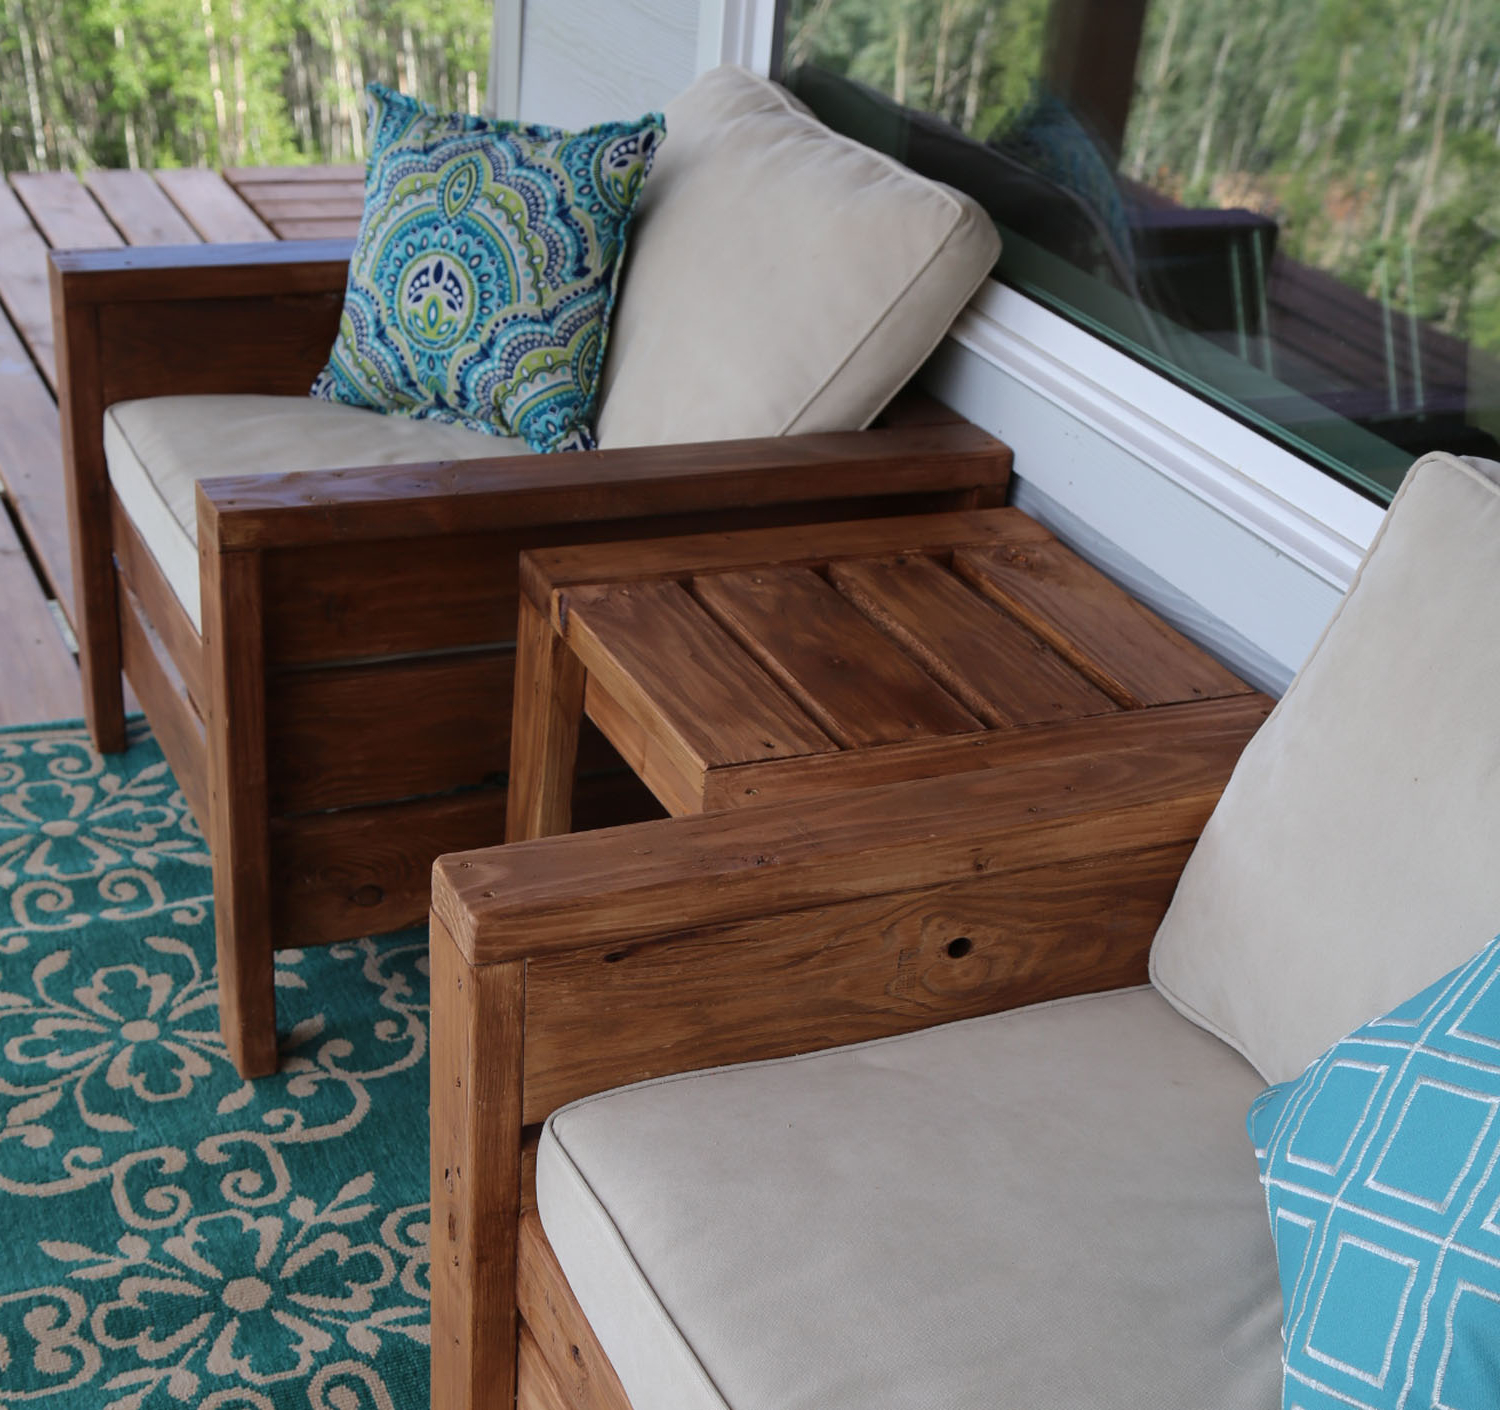 Ana White | Modern Outdoor Chair From 2x4s And 2x6s – Diy Projects Inside Chari Media Center Tables (View 16 of 20)